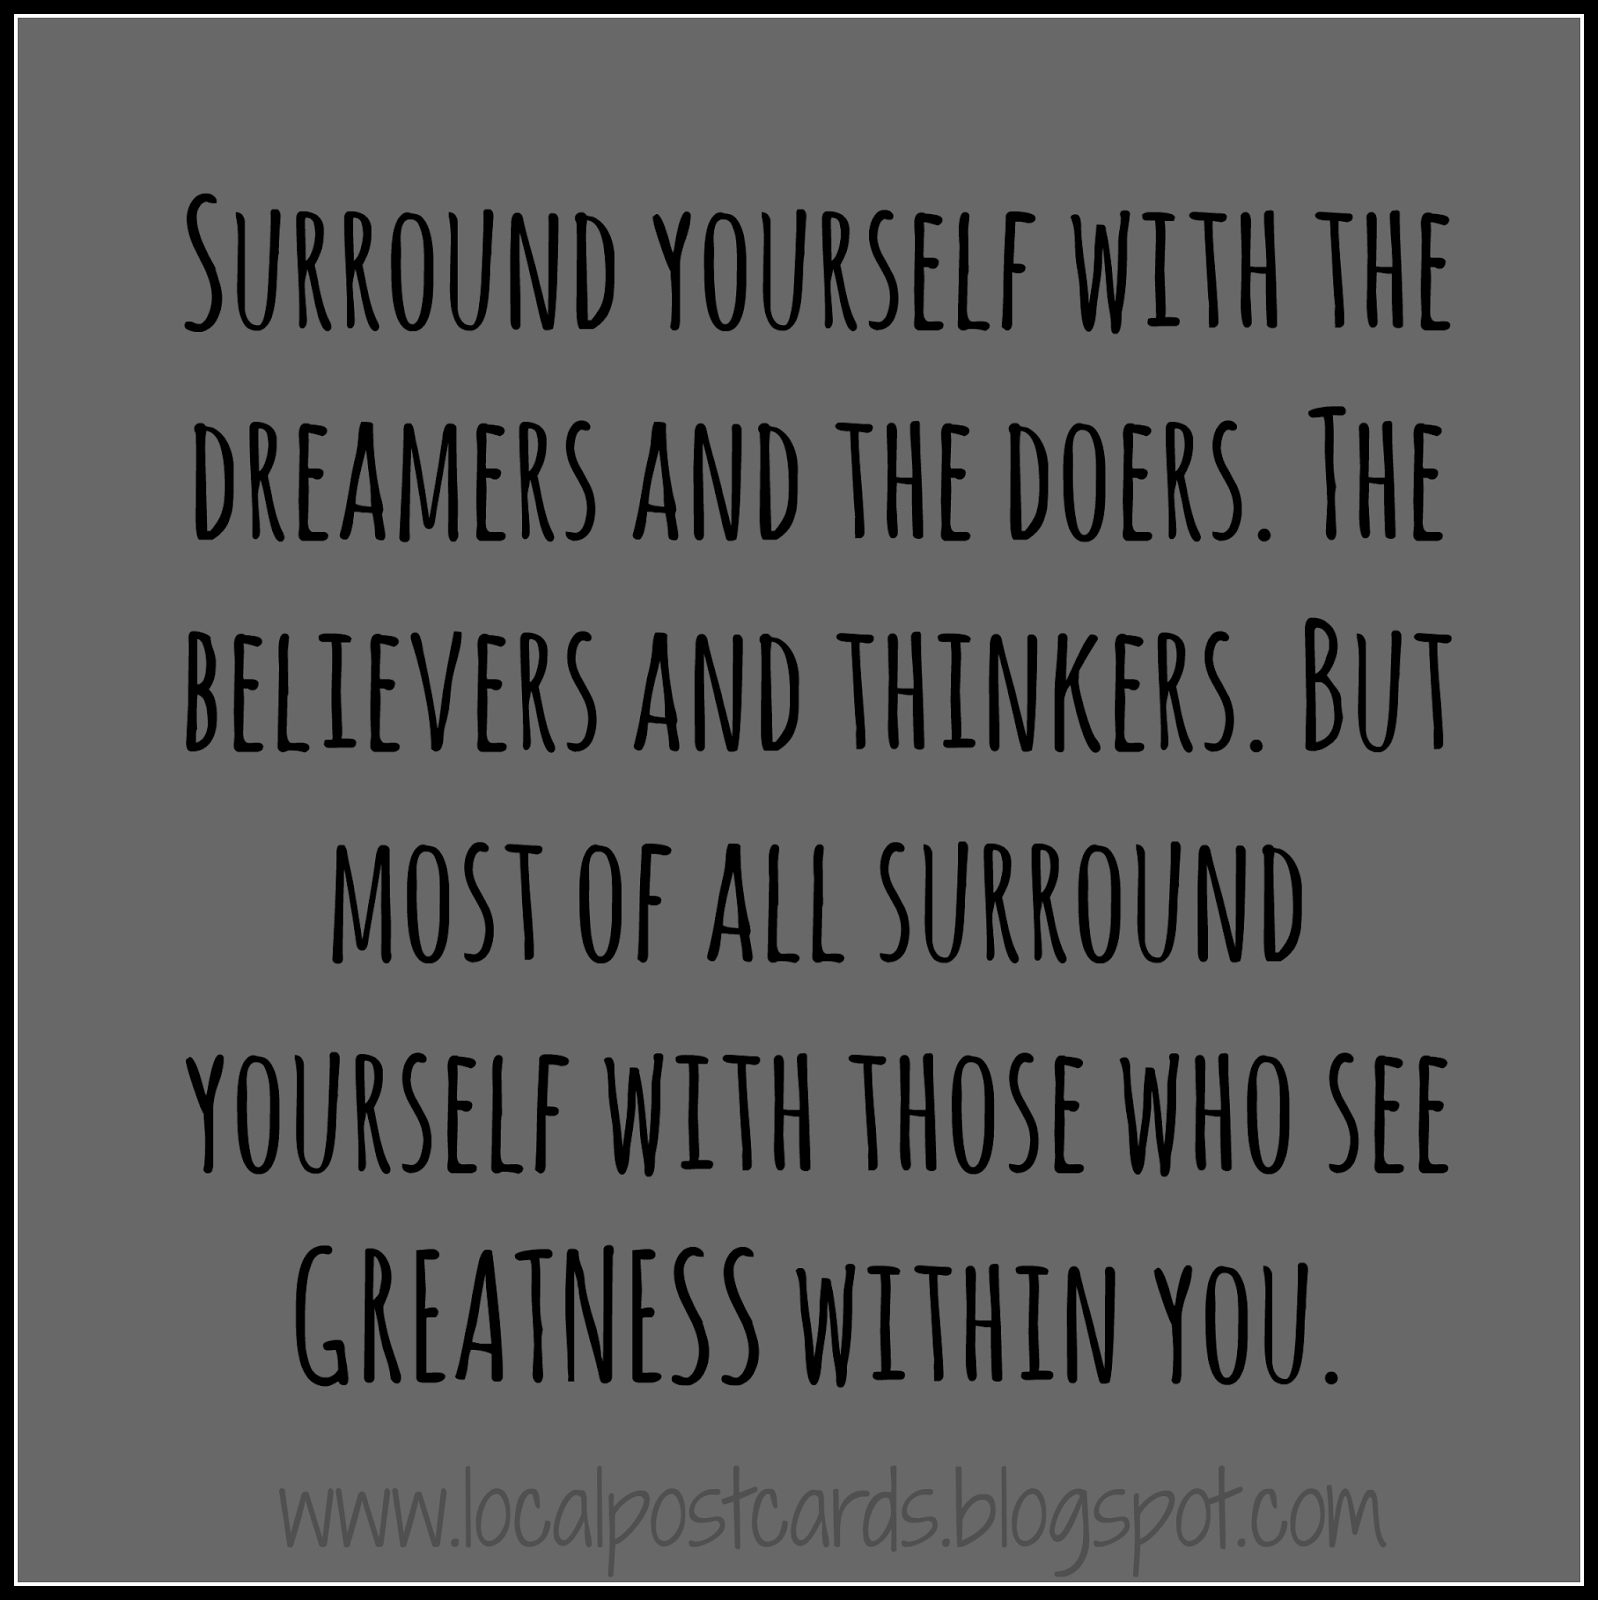 The Dreamers and Doers